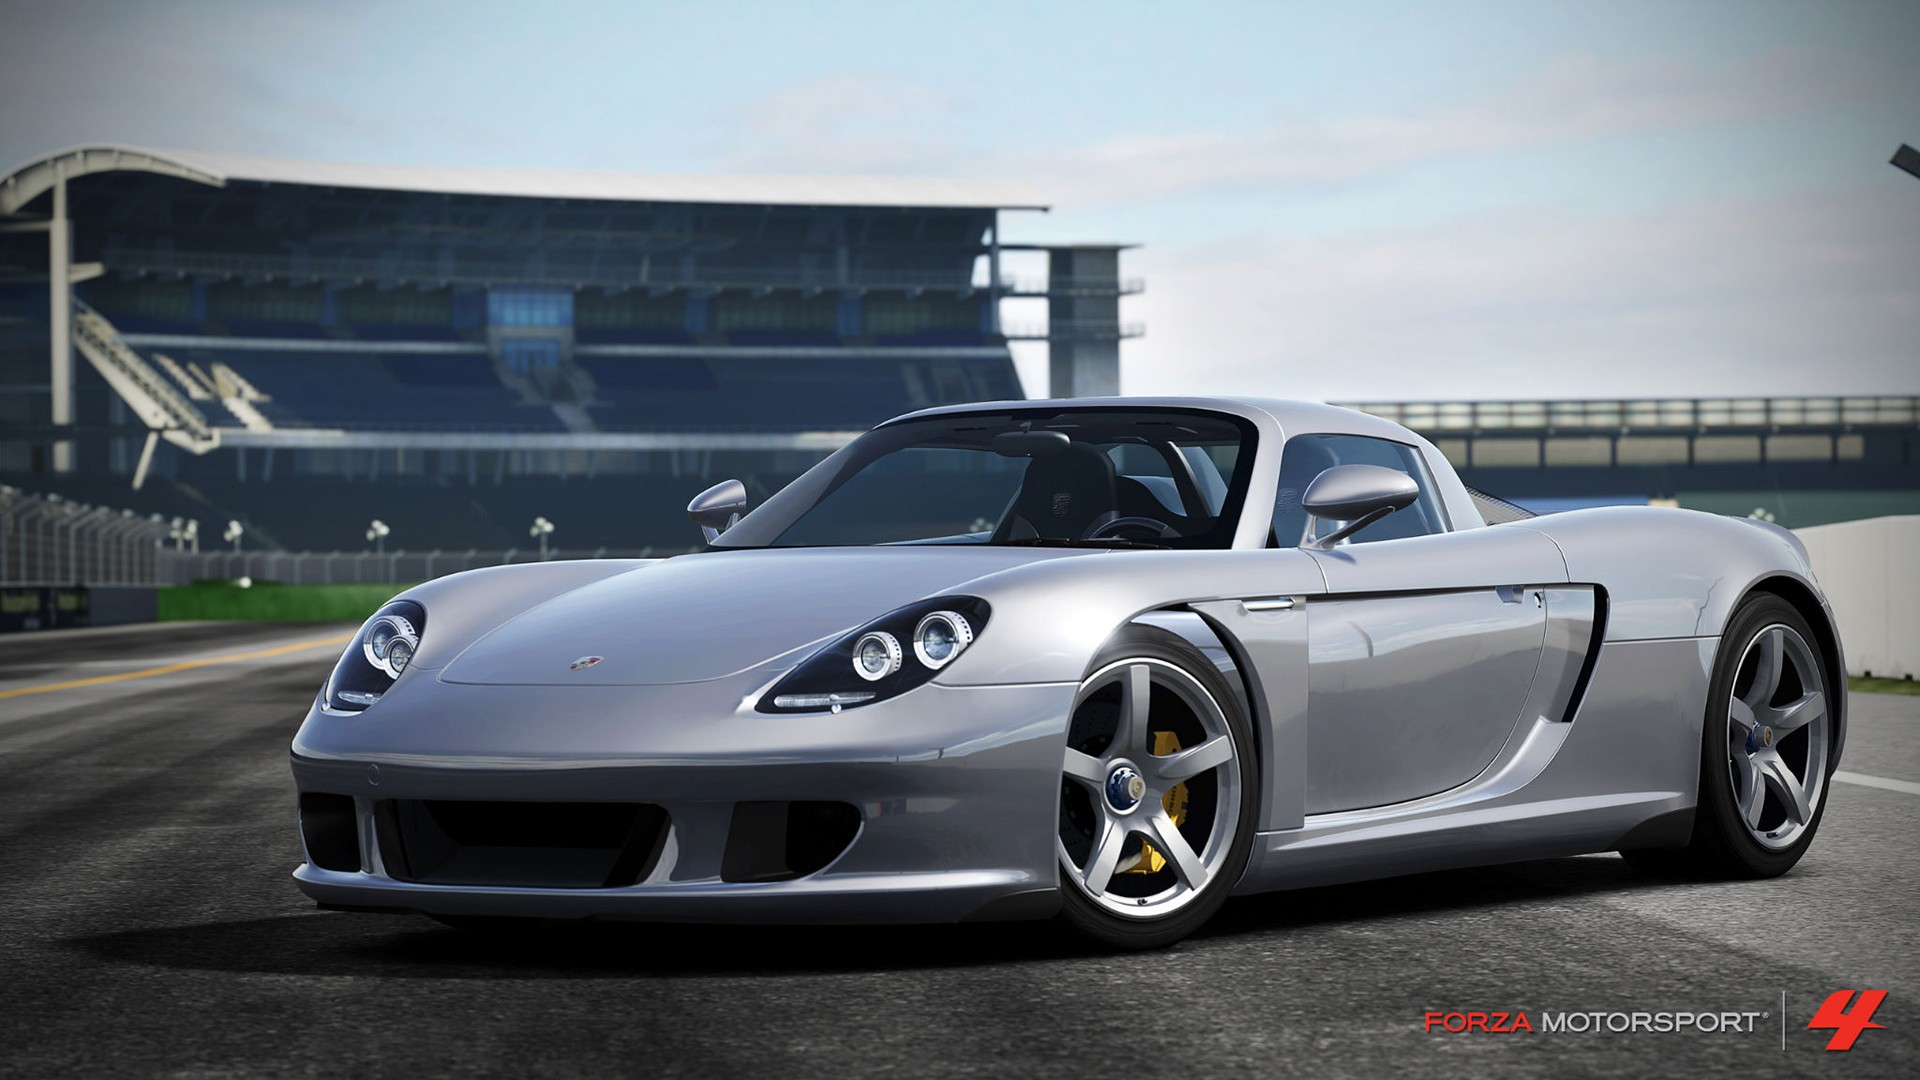 Car Wallpapers Download Full Hd 20 Hd Forza Motorsport Wallpapers